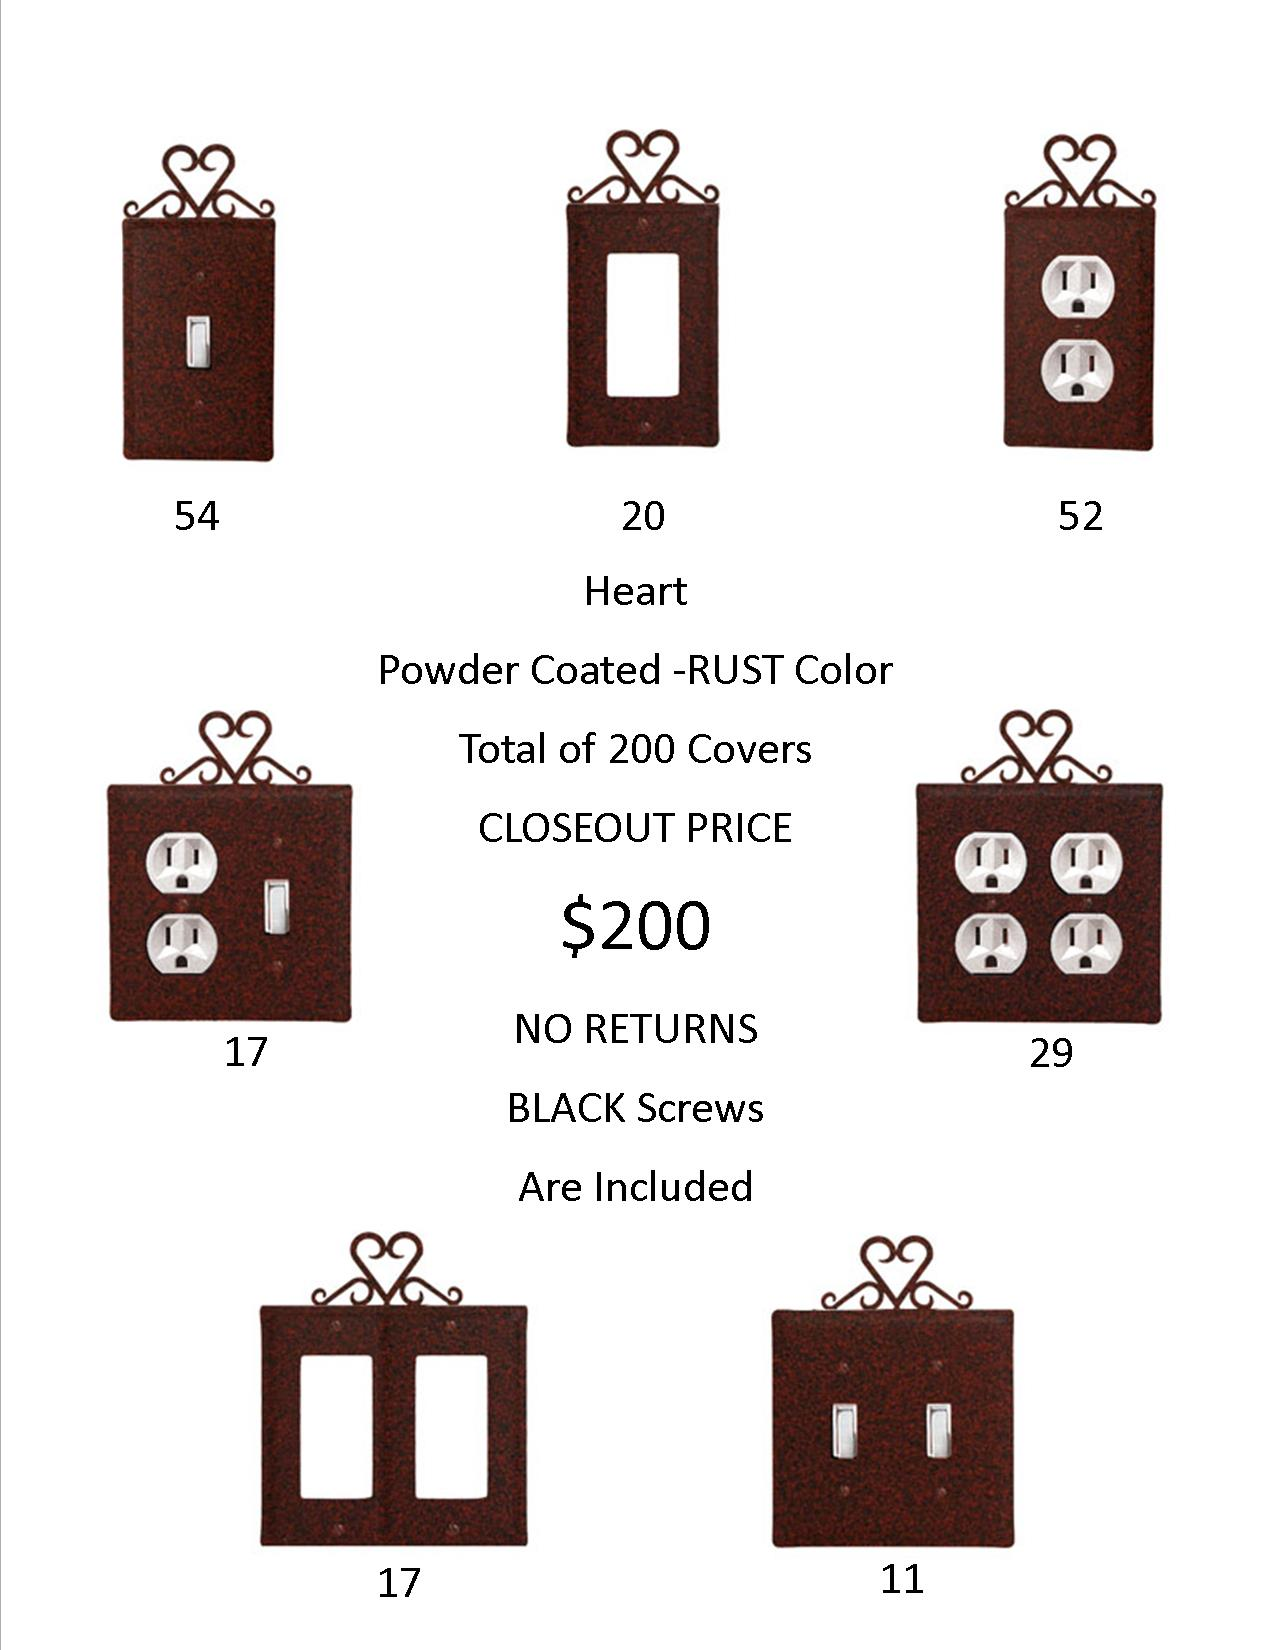 HEART CLOSEOUT - Rust Color ONLY. A total of 200 Electrical Covers for only 1 EACH! ...-...OVER $974  DOLLARS Worth of SAVINGS and that's Wholesale!